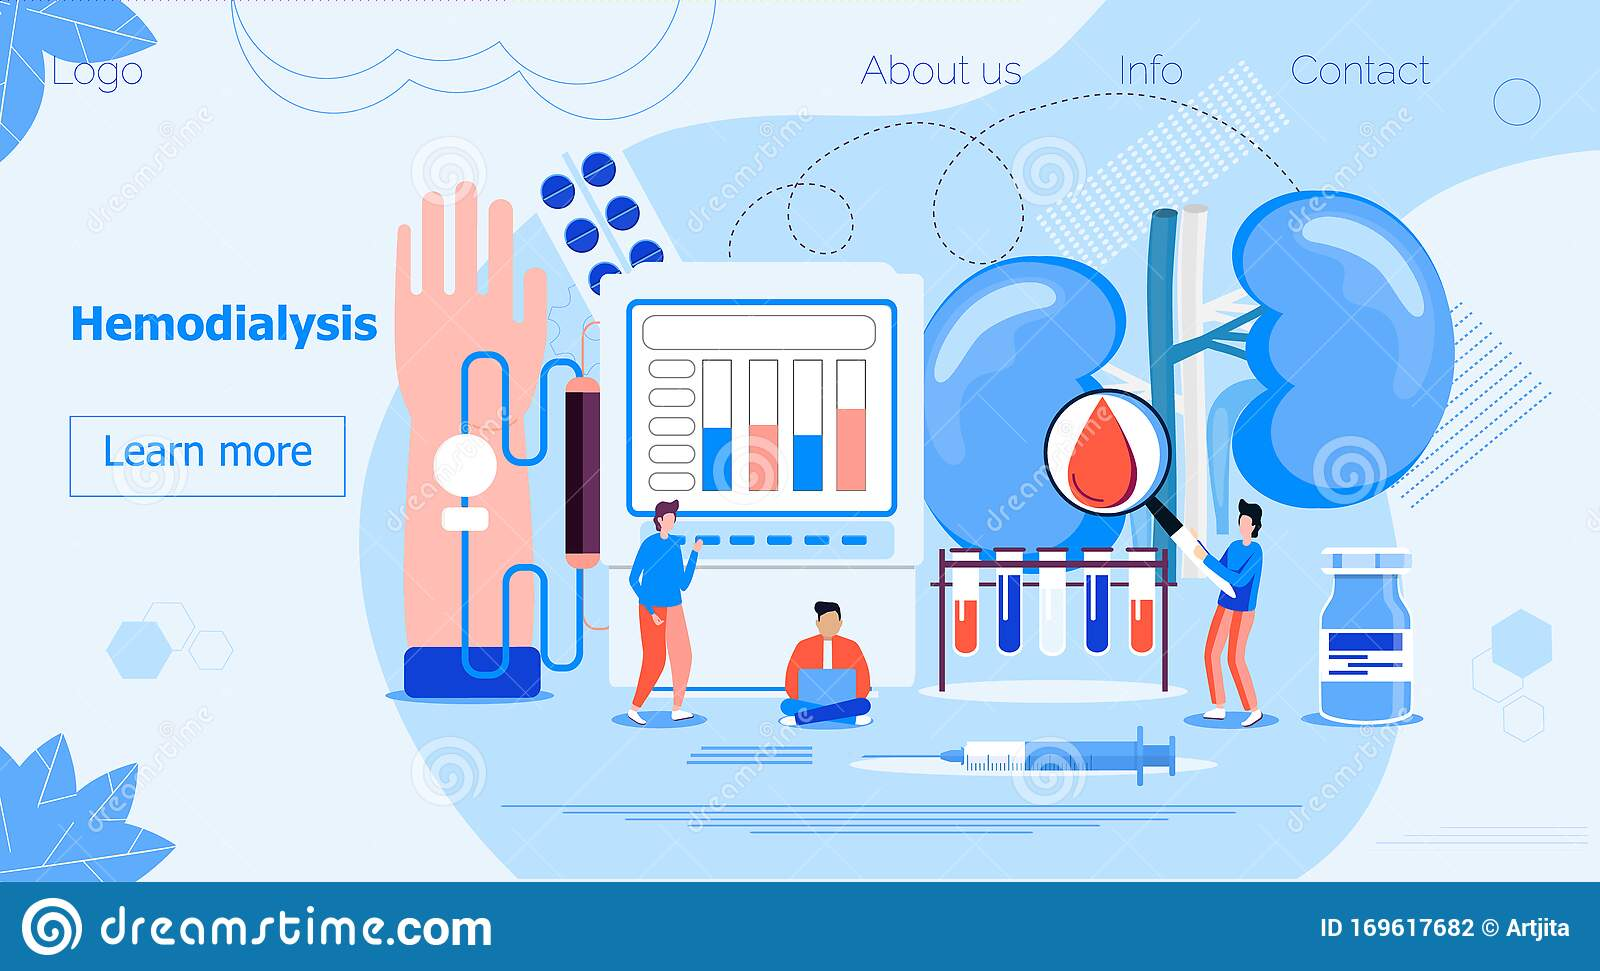 Hemodialysis Concept Vector Method Of Extrarenal Blood Purification In Acute And Chronic Renal Failure Tiny Doctors Stock Vector Illustration Of Disease Medical 169617682